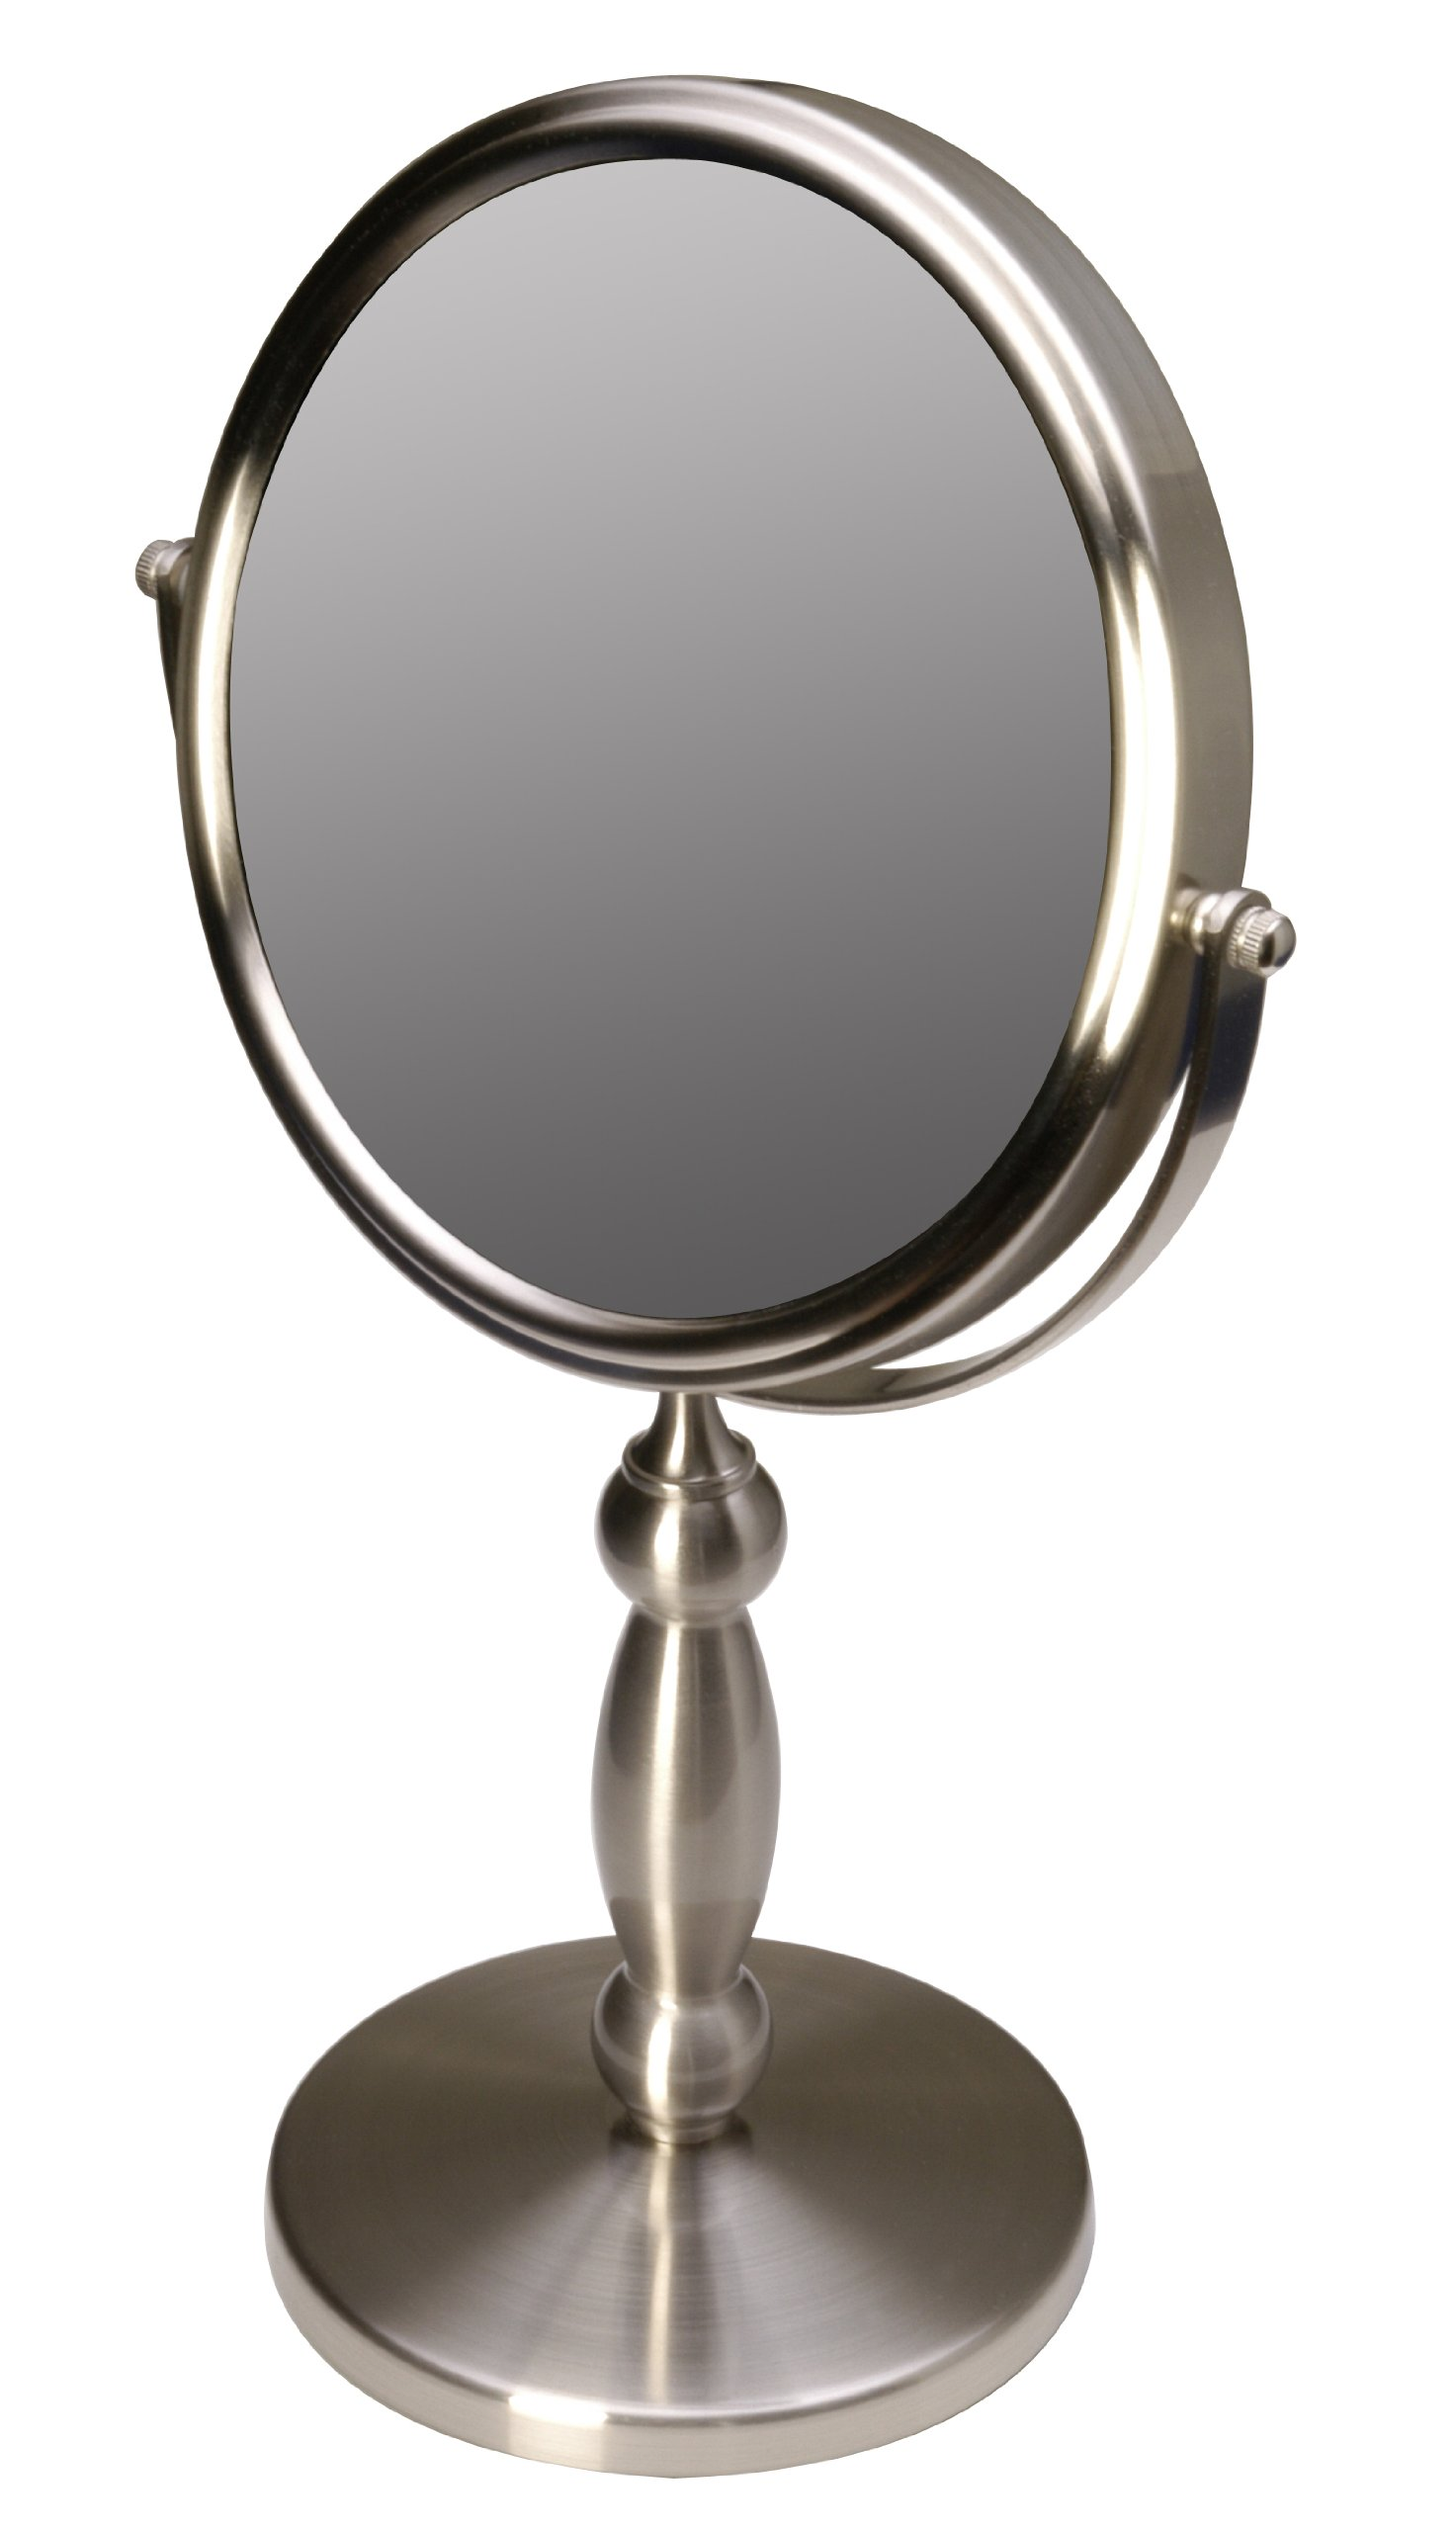 Floxite Fl-15v 15 Extra Strong 15x/1x Supervision Vanity Mirror, Brushed Nickel by Floxite (Image #1)